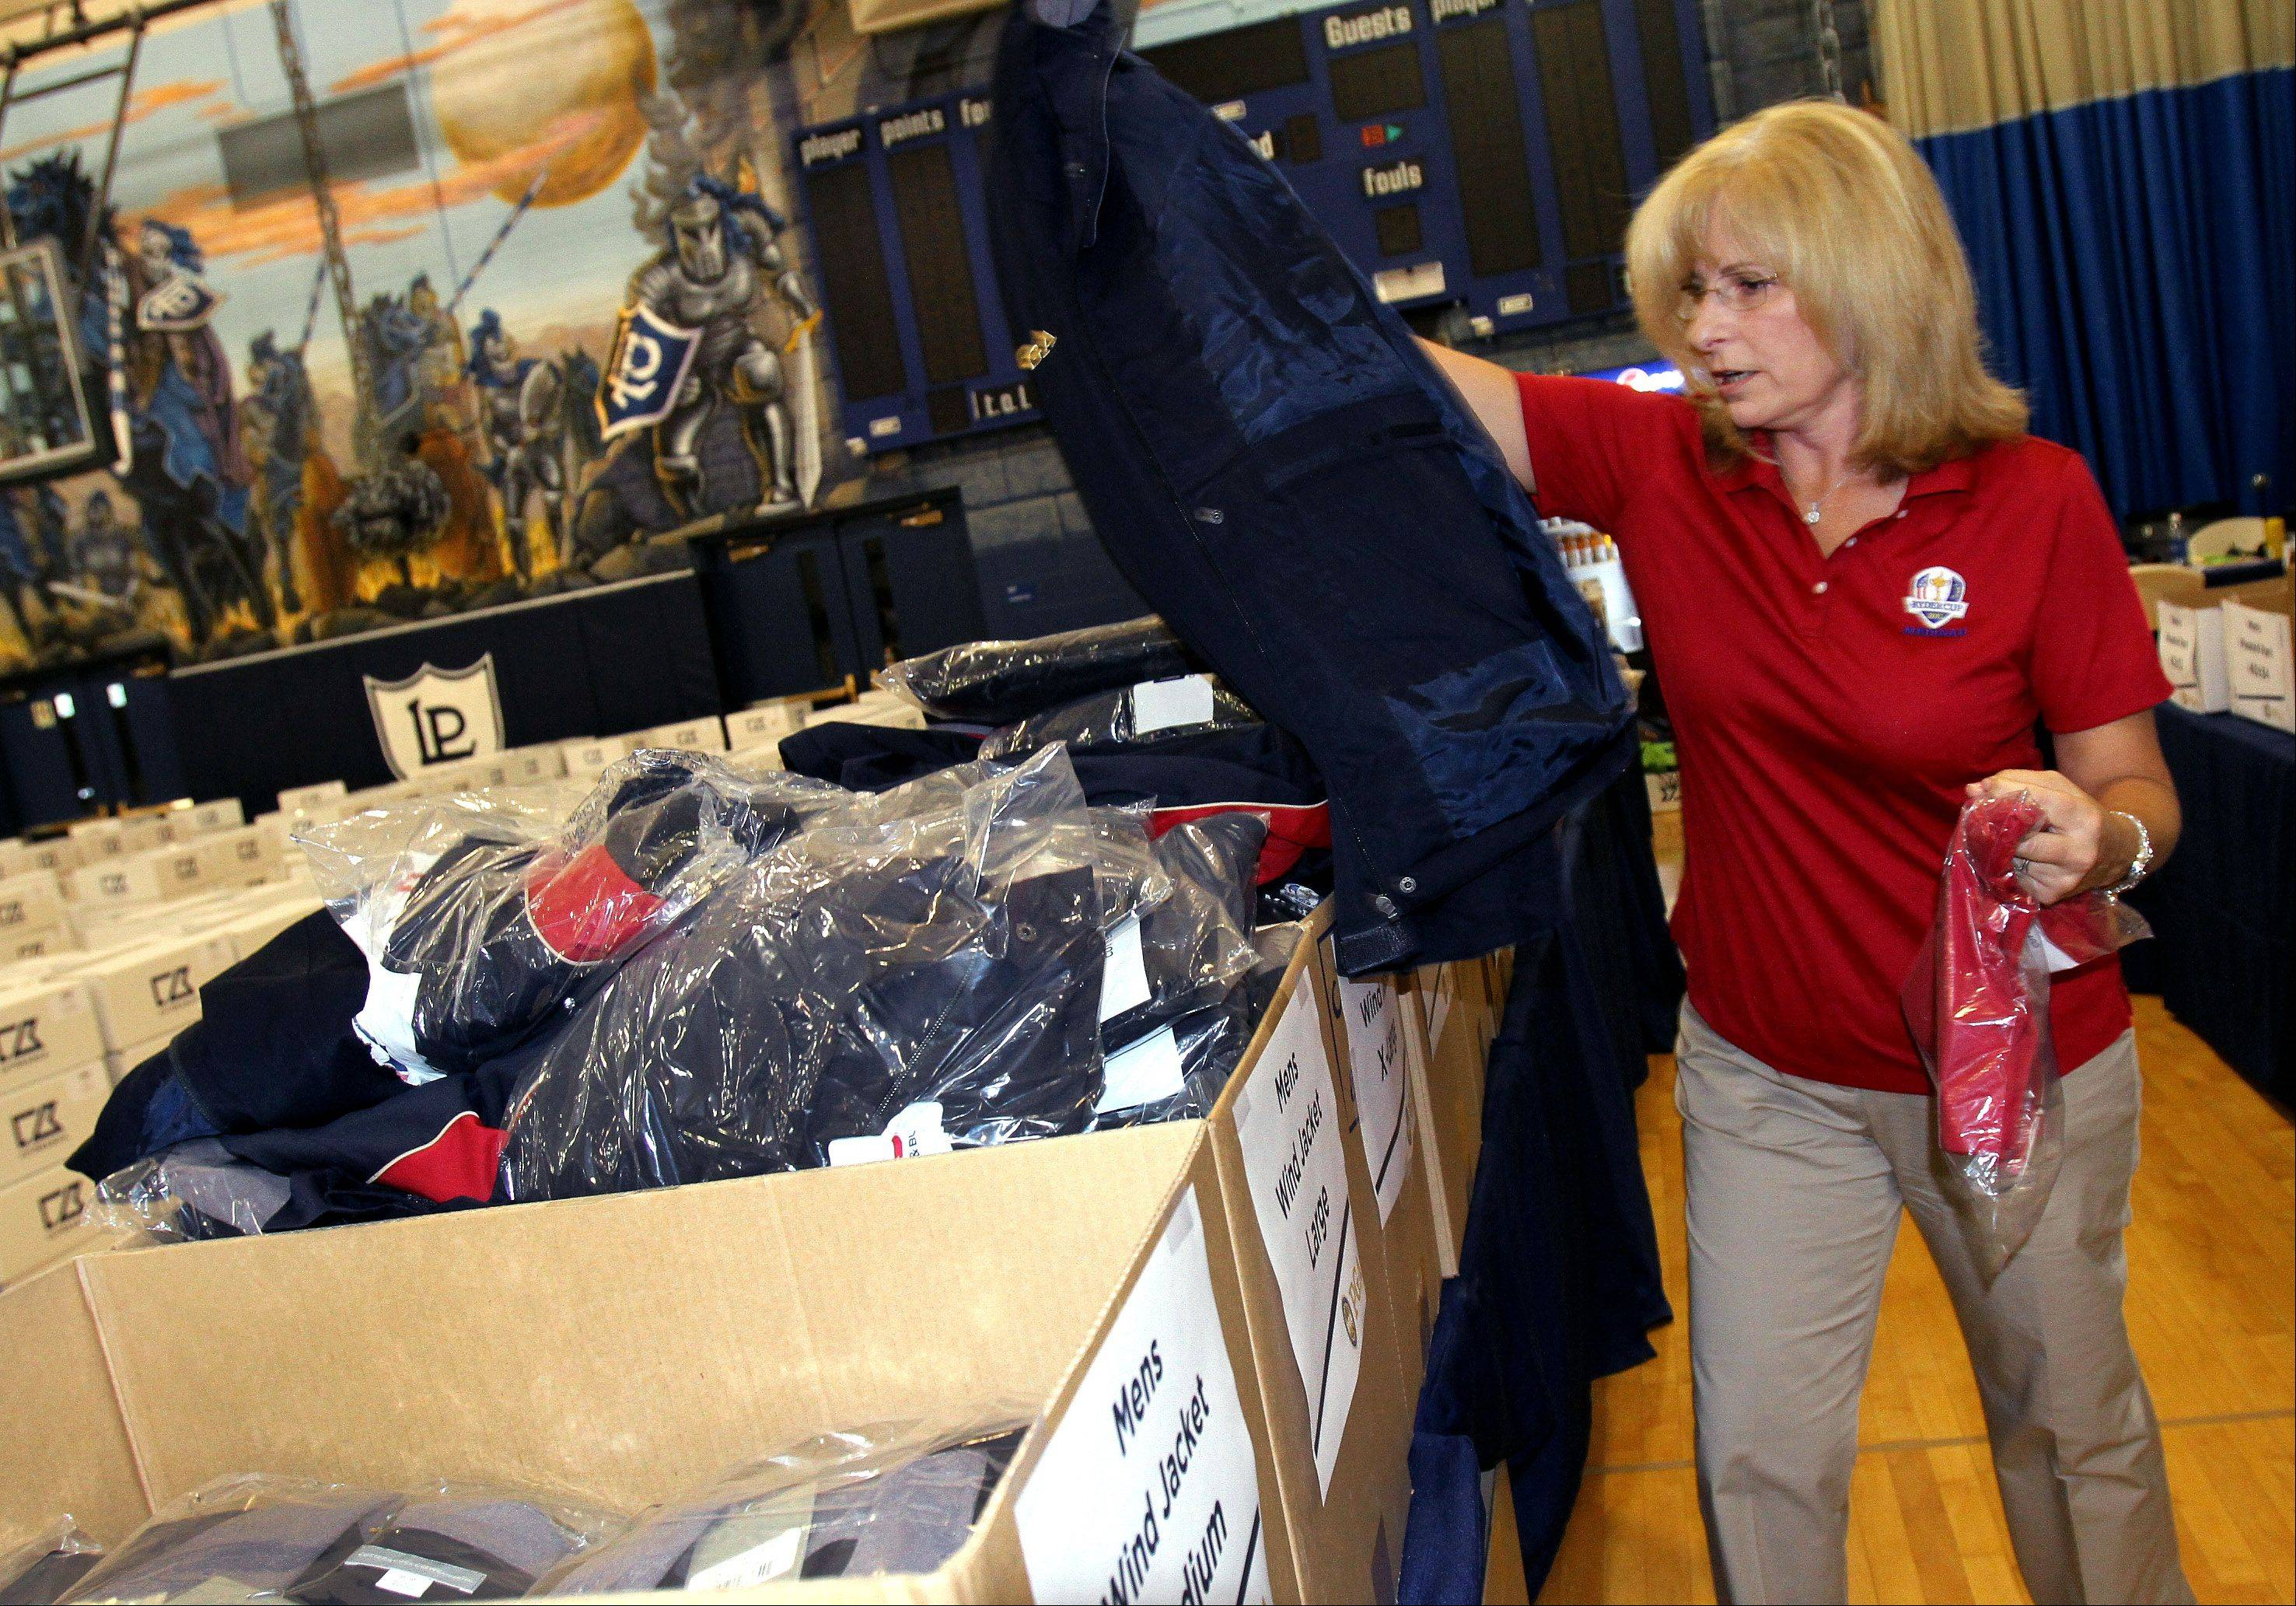 Volunteer Susan Novak of Mount Prospect gets another size jacket for working as a volunteer at the Ryder Cup.